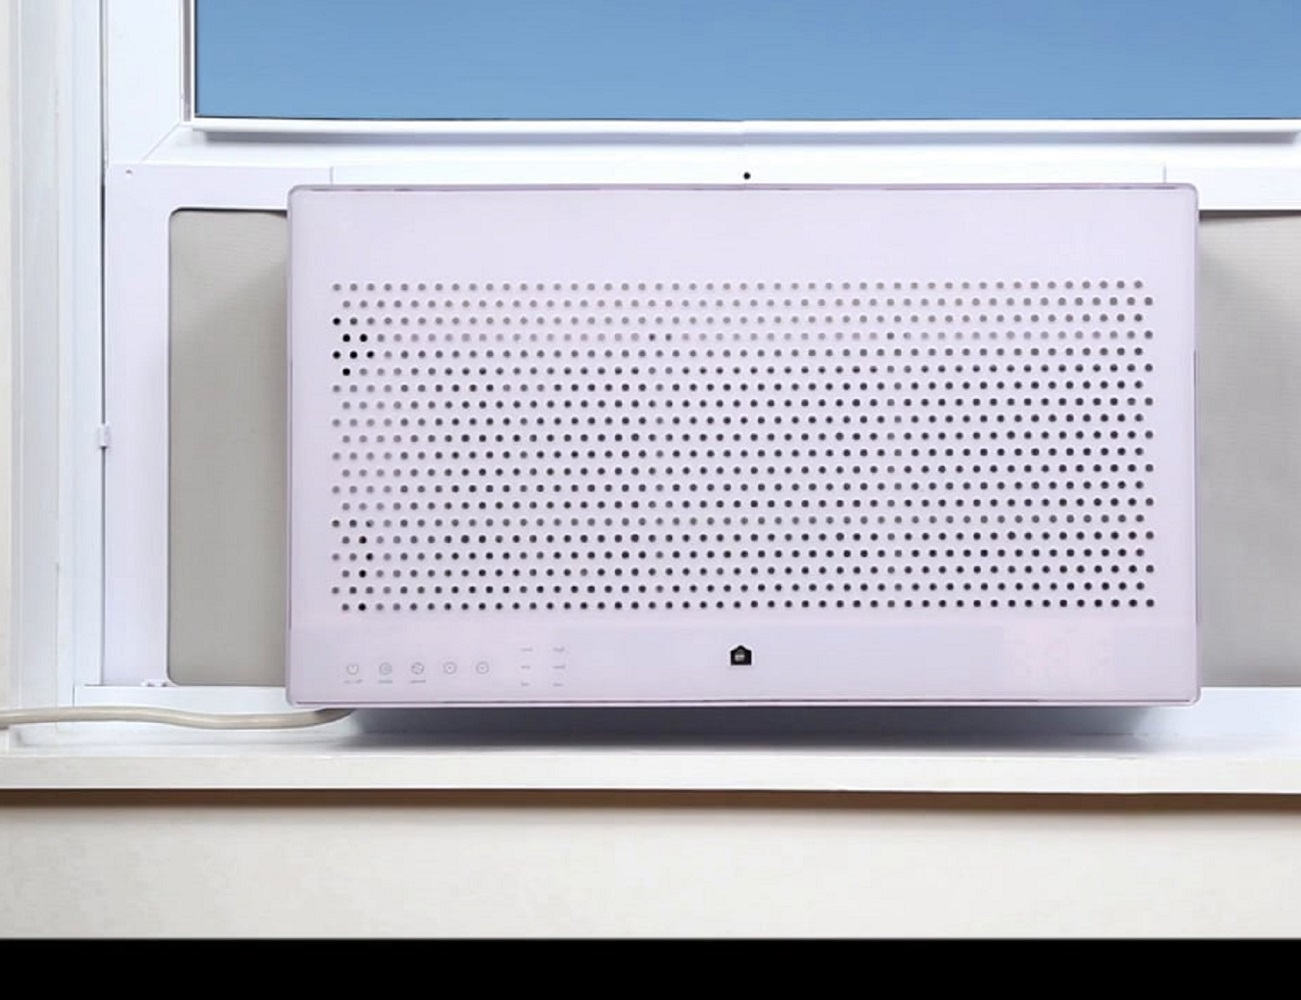 Aros Smart Window Air Conditioner 187 Gadget Flow